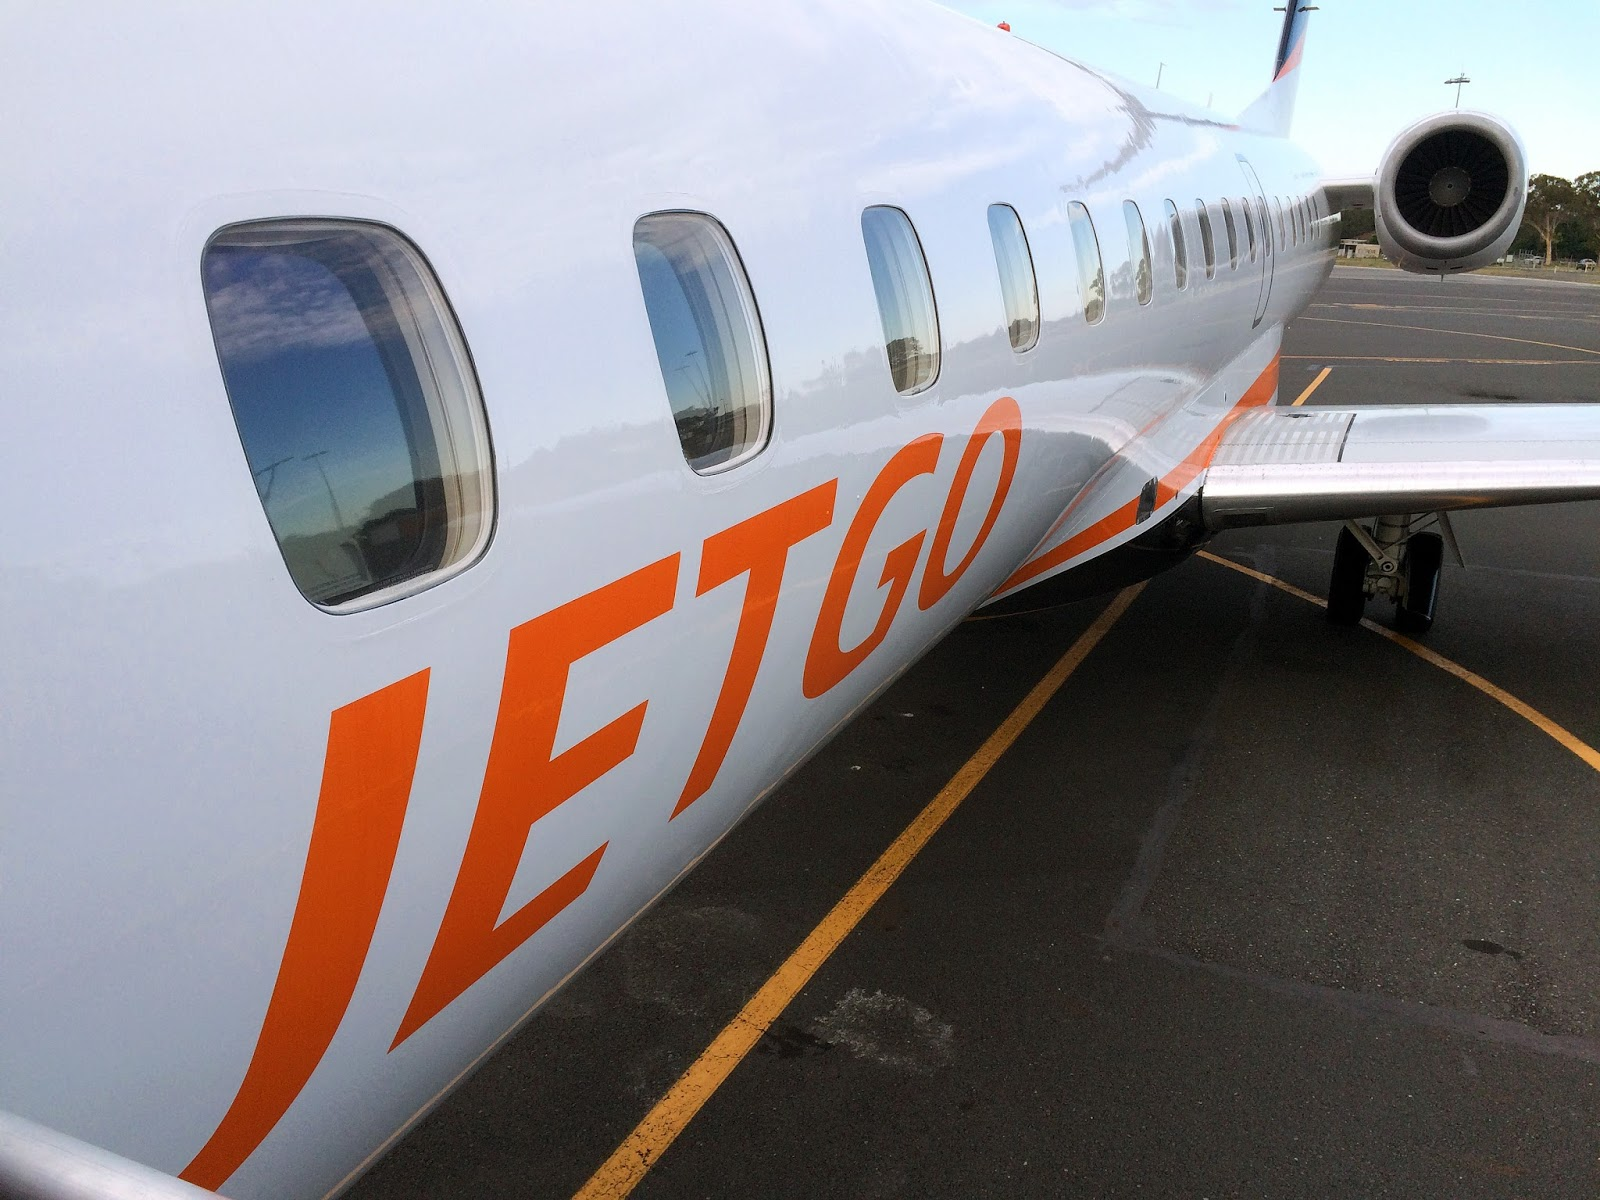 JETGO Australia Plane in Port Macquarie